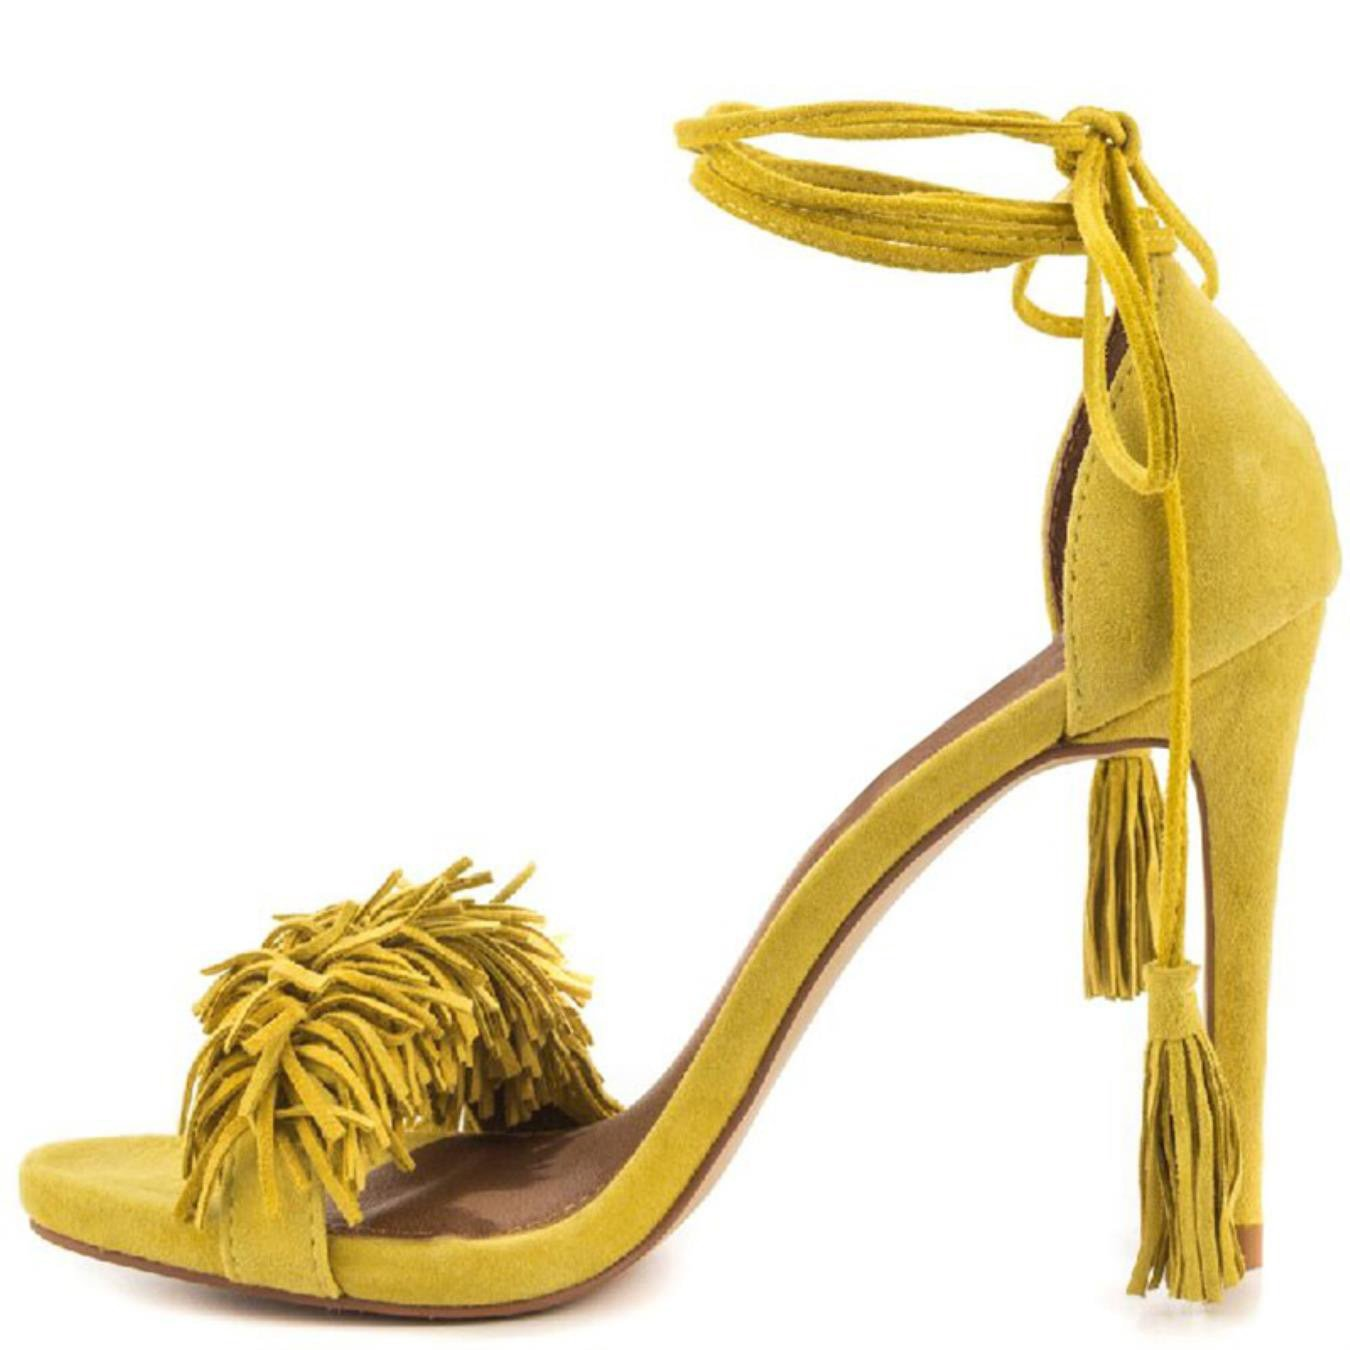 8dffdf27ba3a Women gladiator sandals summer extreme high heels faux fringe yellow  stilettos shoes clothing jpg 1350x1350 Yellow